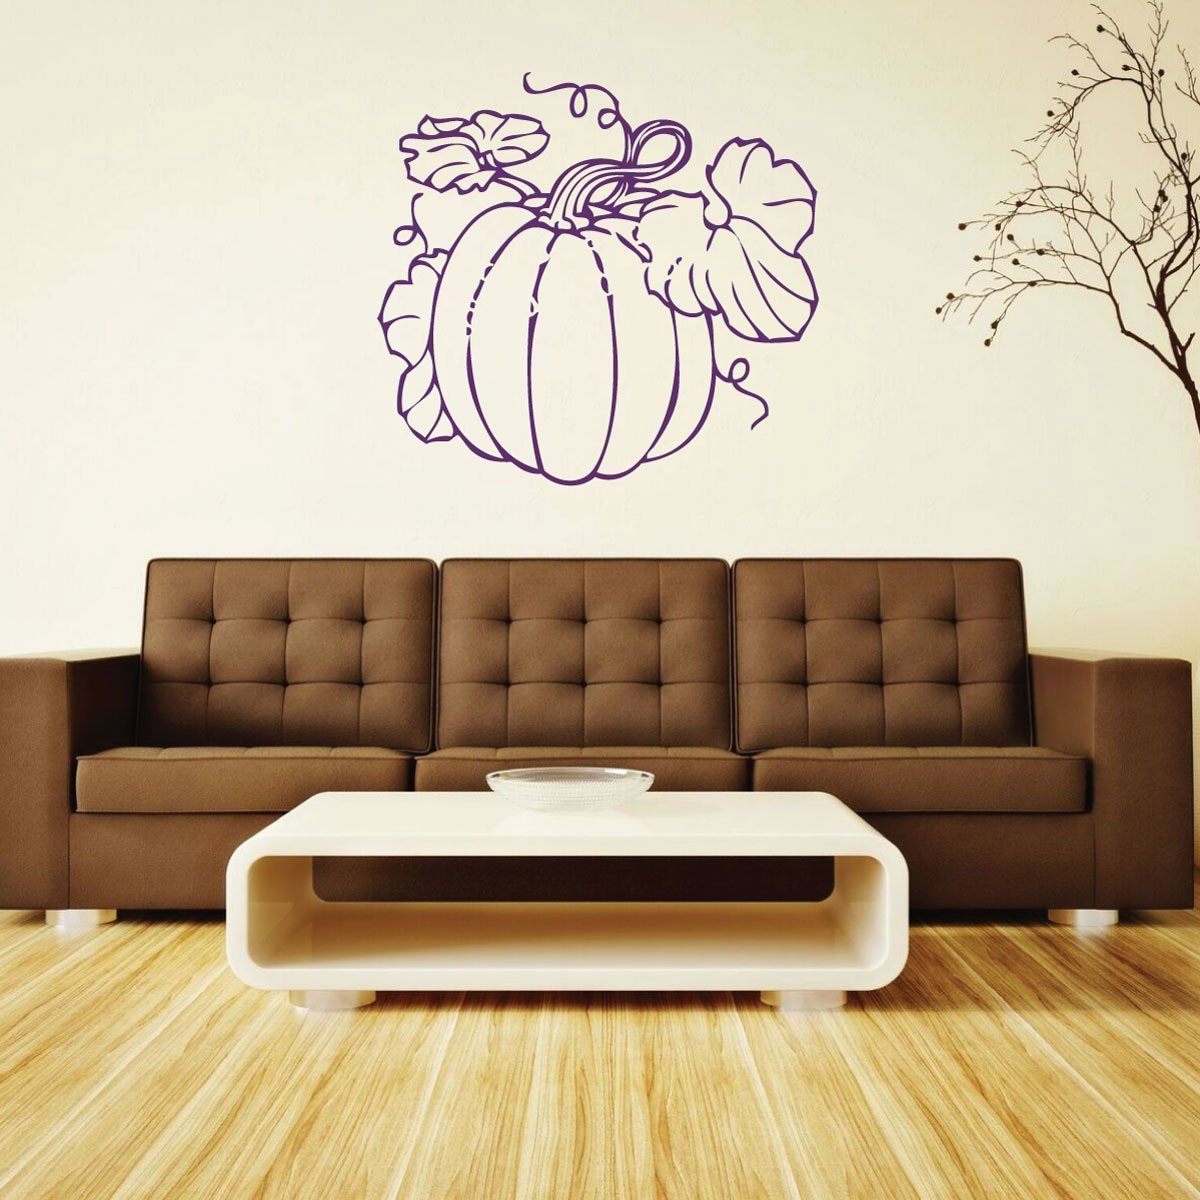 Autumn Decorations - Vintage Pumpkin With Vines - Thanksgiving Decor for the Home